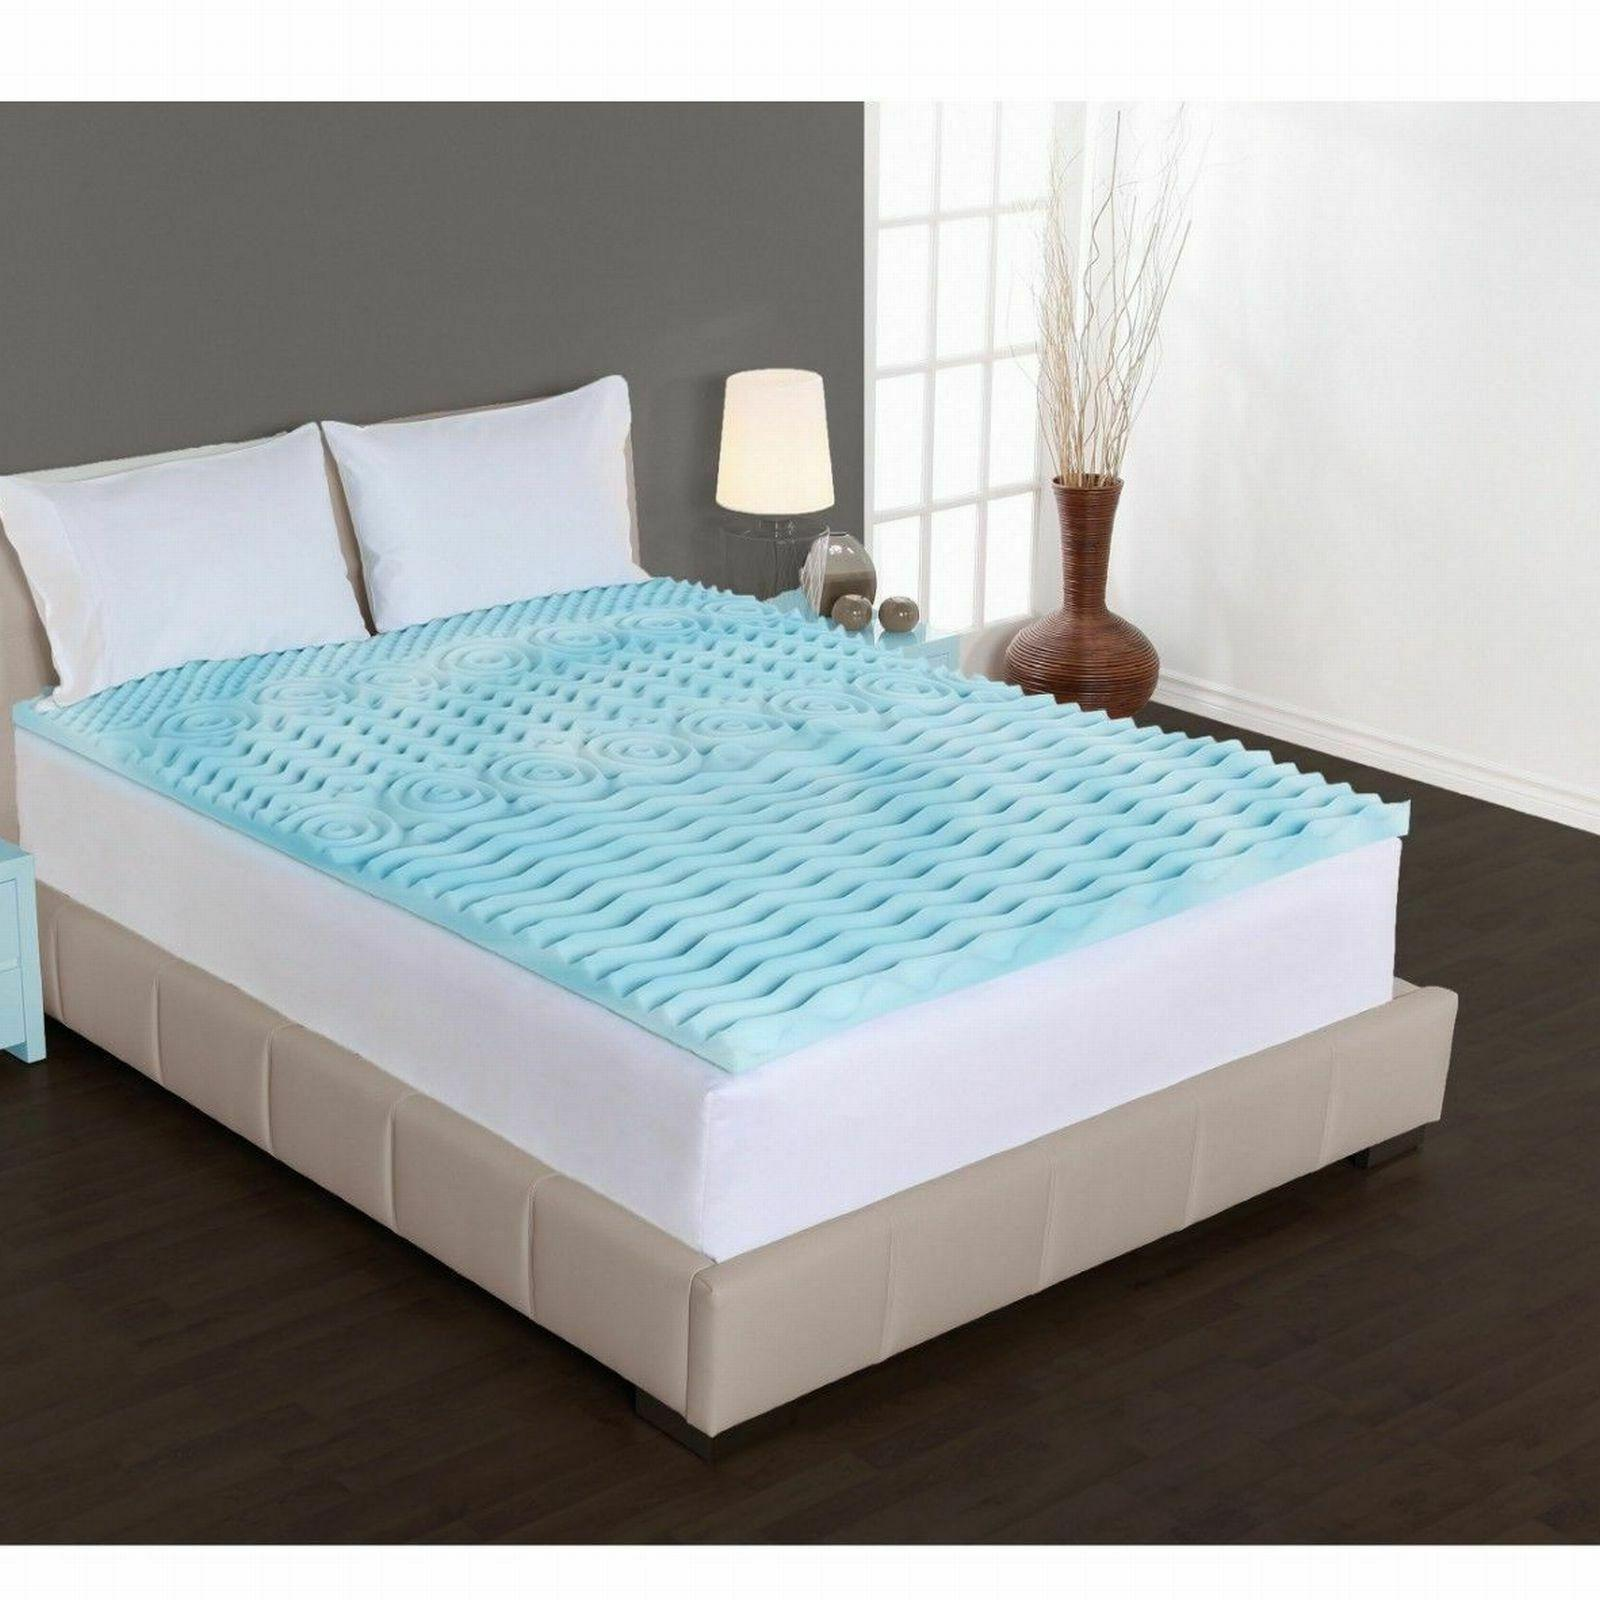 Orthopedic Bed Zone Authentic Comfort Inch Cover